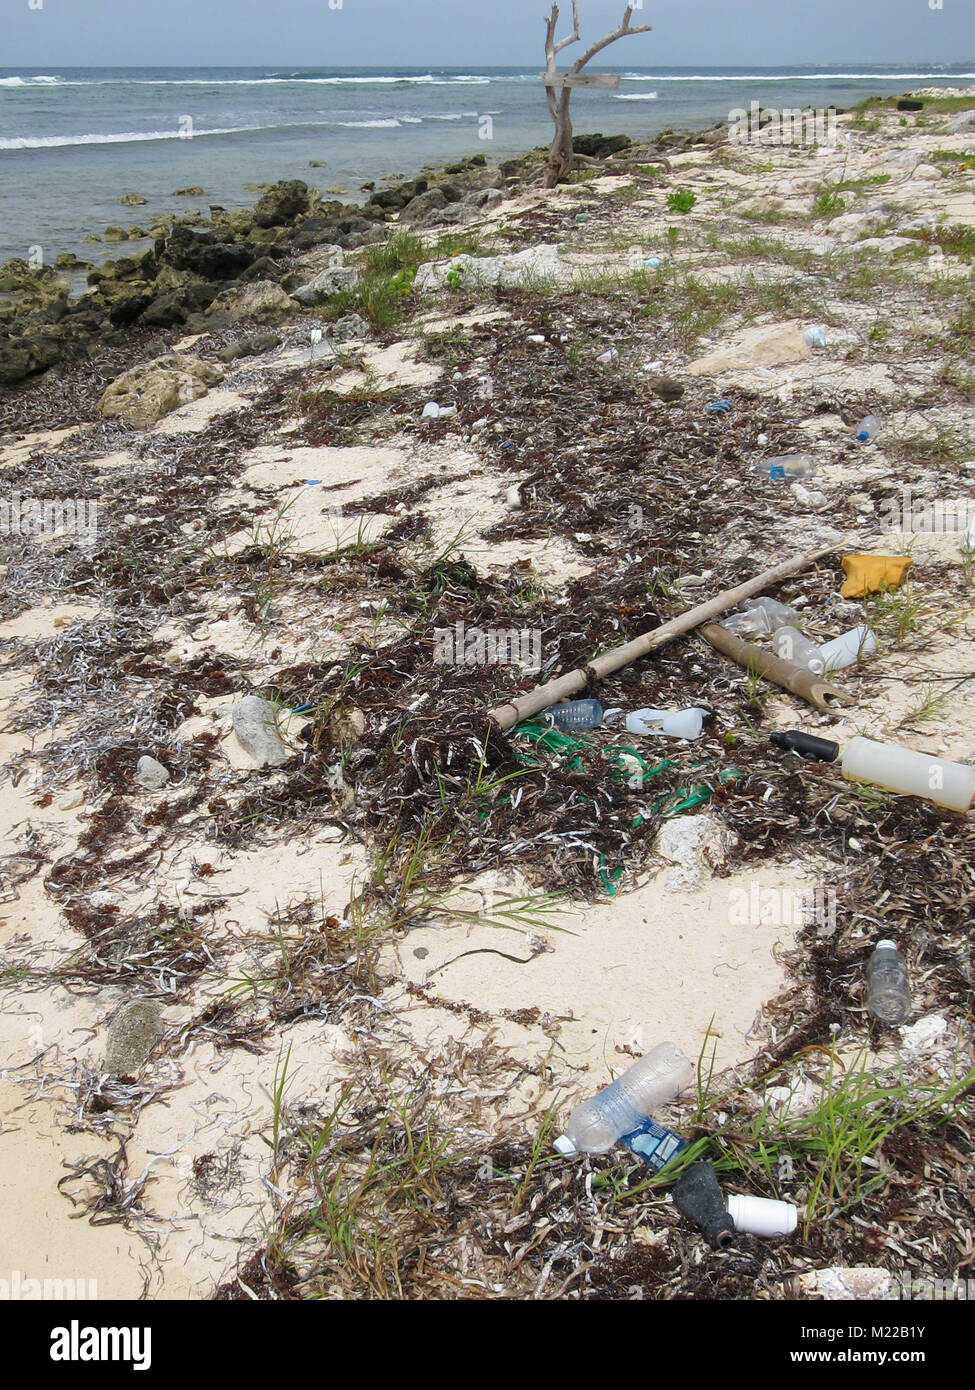 Washed up plastics litter the beaches on Grand Cayman, Cayman Islands, Caribbean. - Stock Image